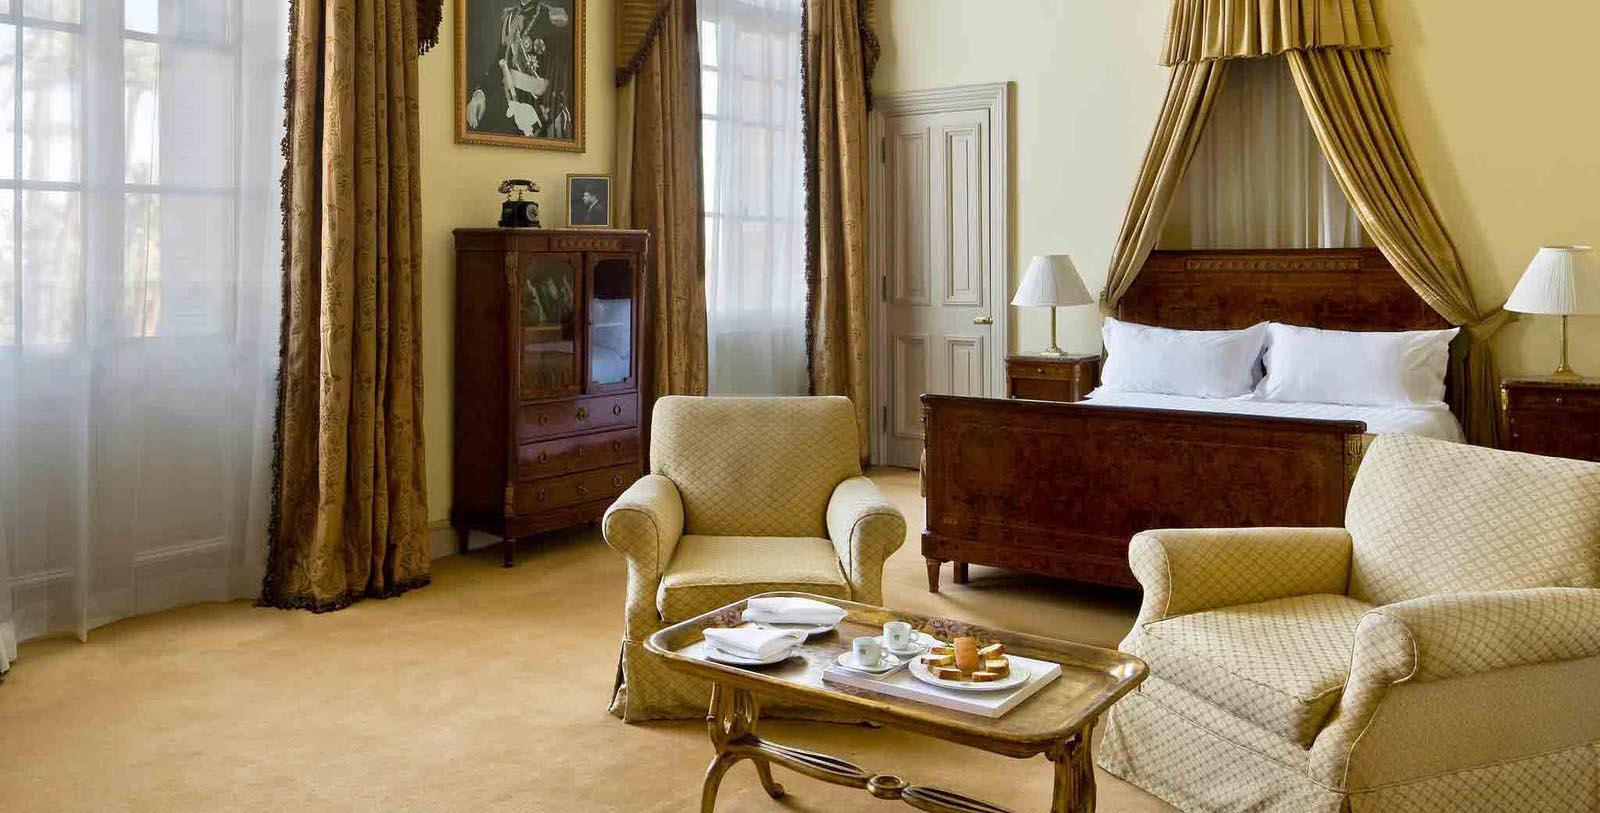 Image of Guestroom at Sofitel Winter Palace Luxor, 1886, Member of Historic Hotels Worldwide, in Luxor, Egypt, Accommodations